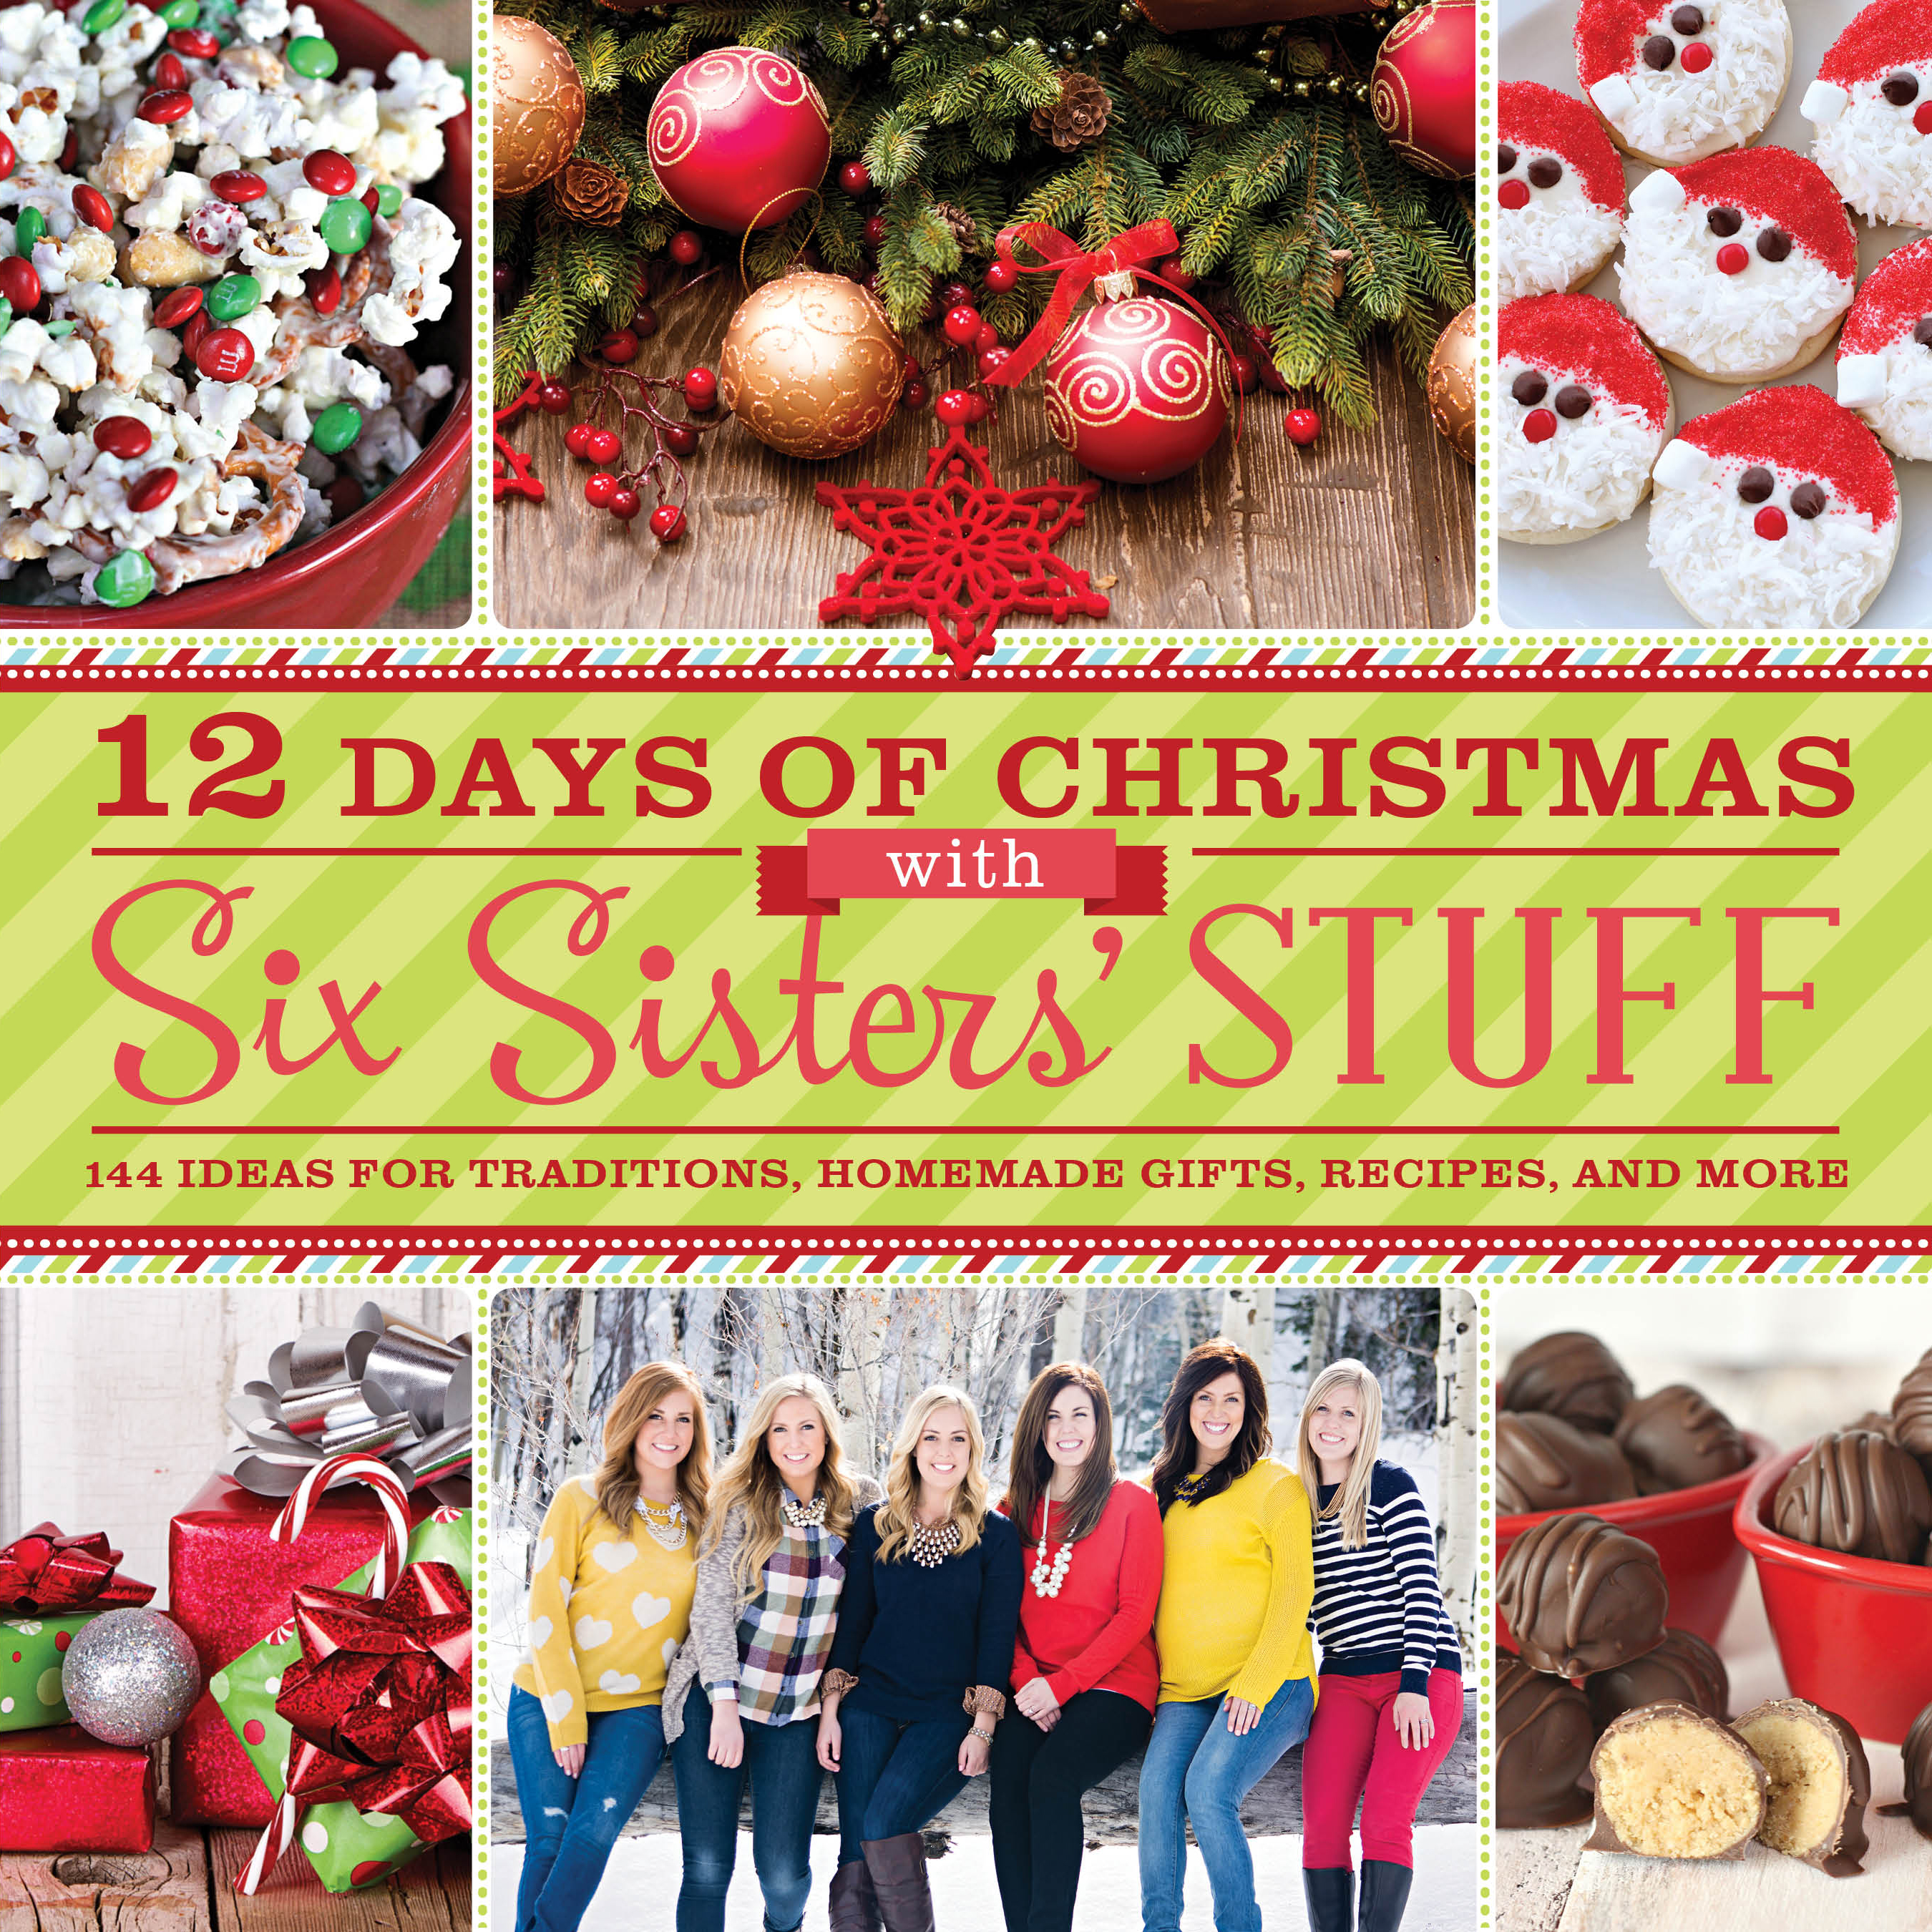 12 Days of Christmas with Six Sisters' Stuff 144 Ideas for Traditions, Homemade Gifts, Recipes, and More